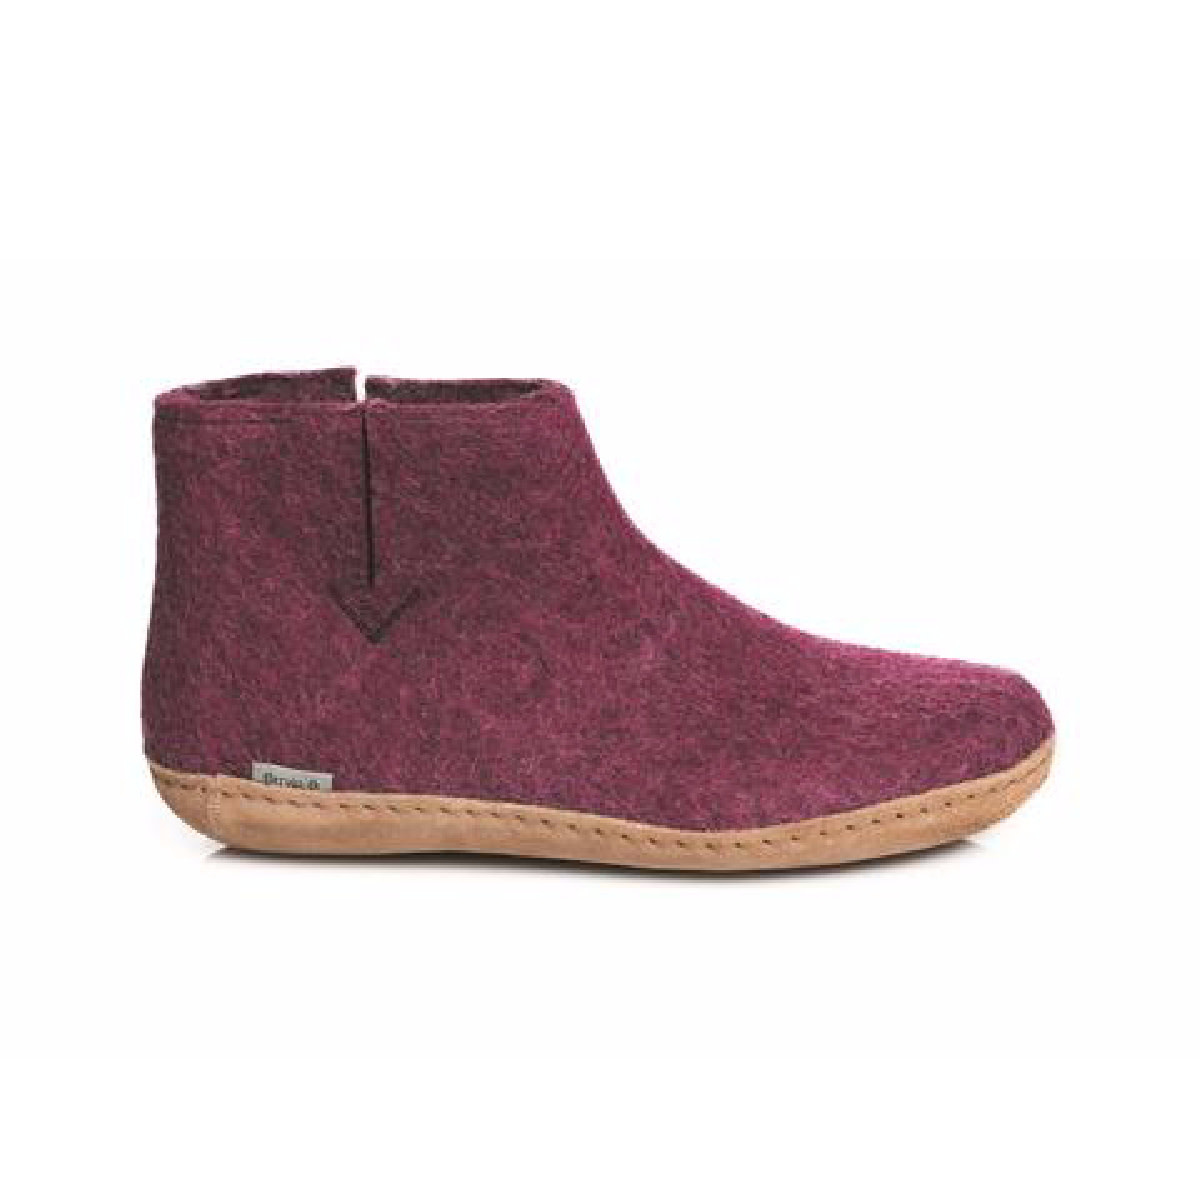 Glerups Glerups Women's Boot Leather Sole Cranberry